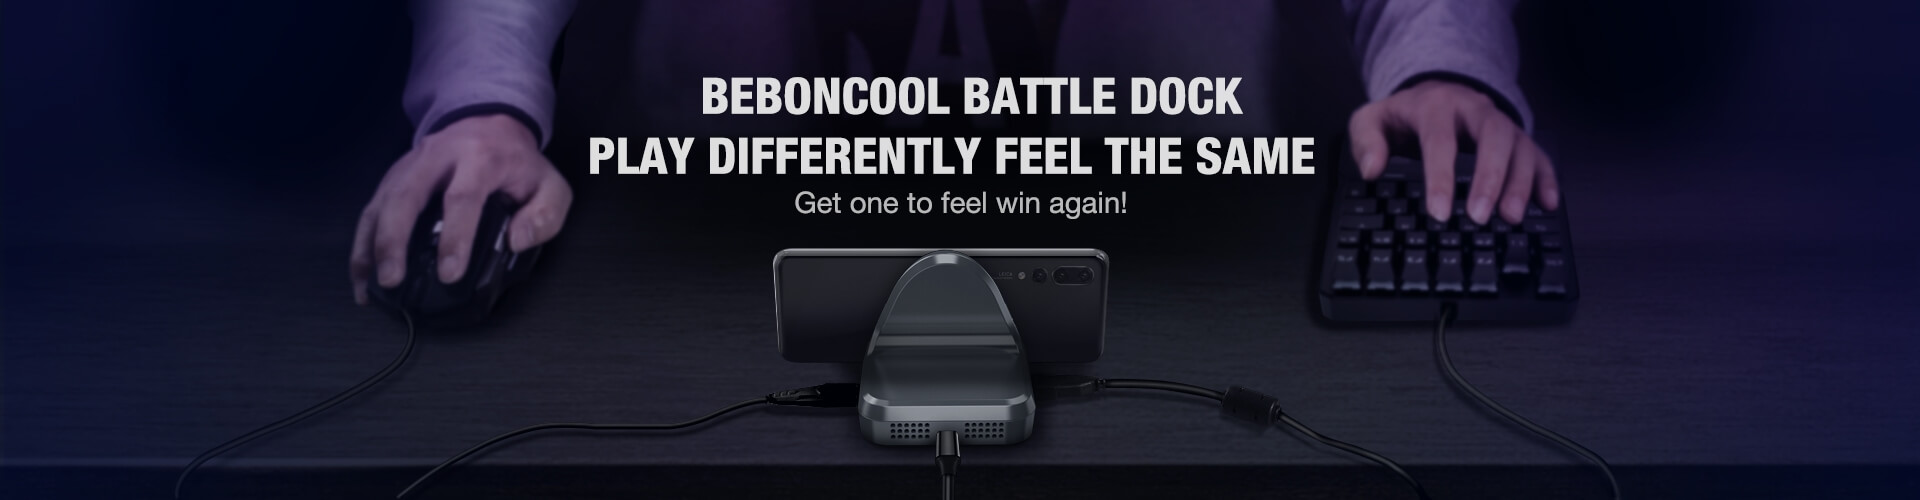 beboncool keyboard and mouse converter for pubg mobile